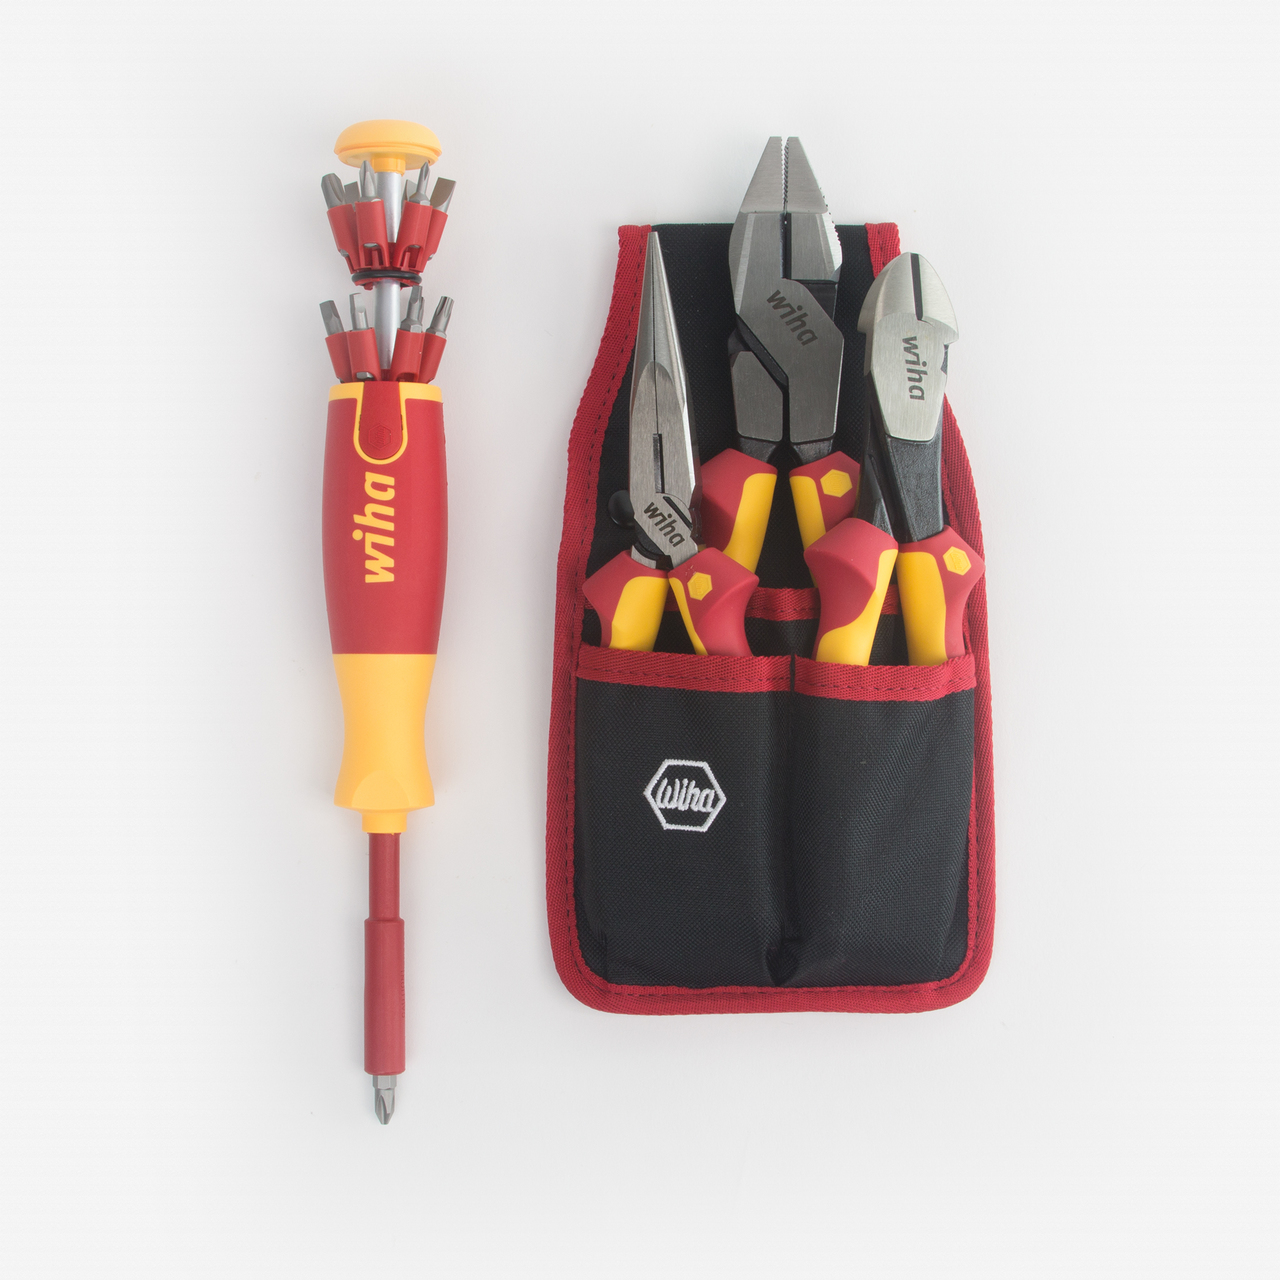 Wiha 32990 Insulated Pliers Cutters and Pop-Up Bit Holder Screwdriver Set - KC Tool